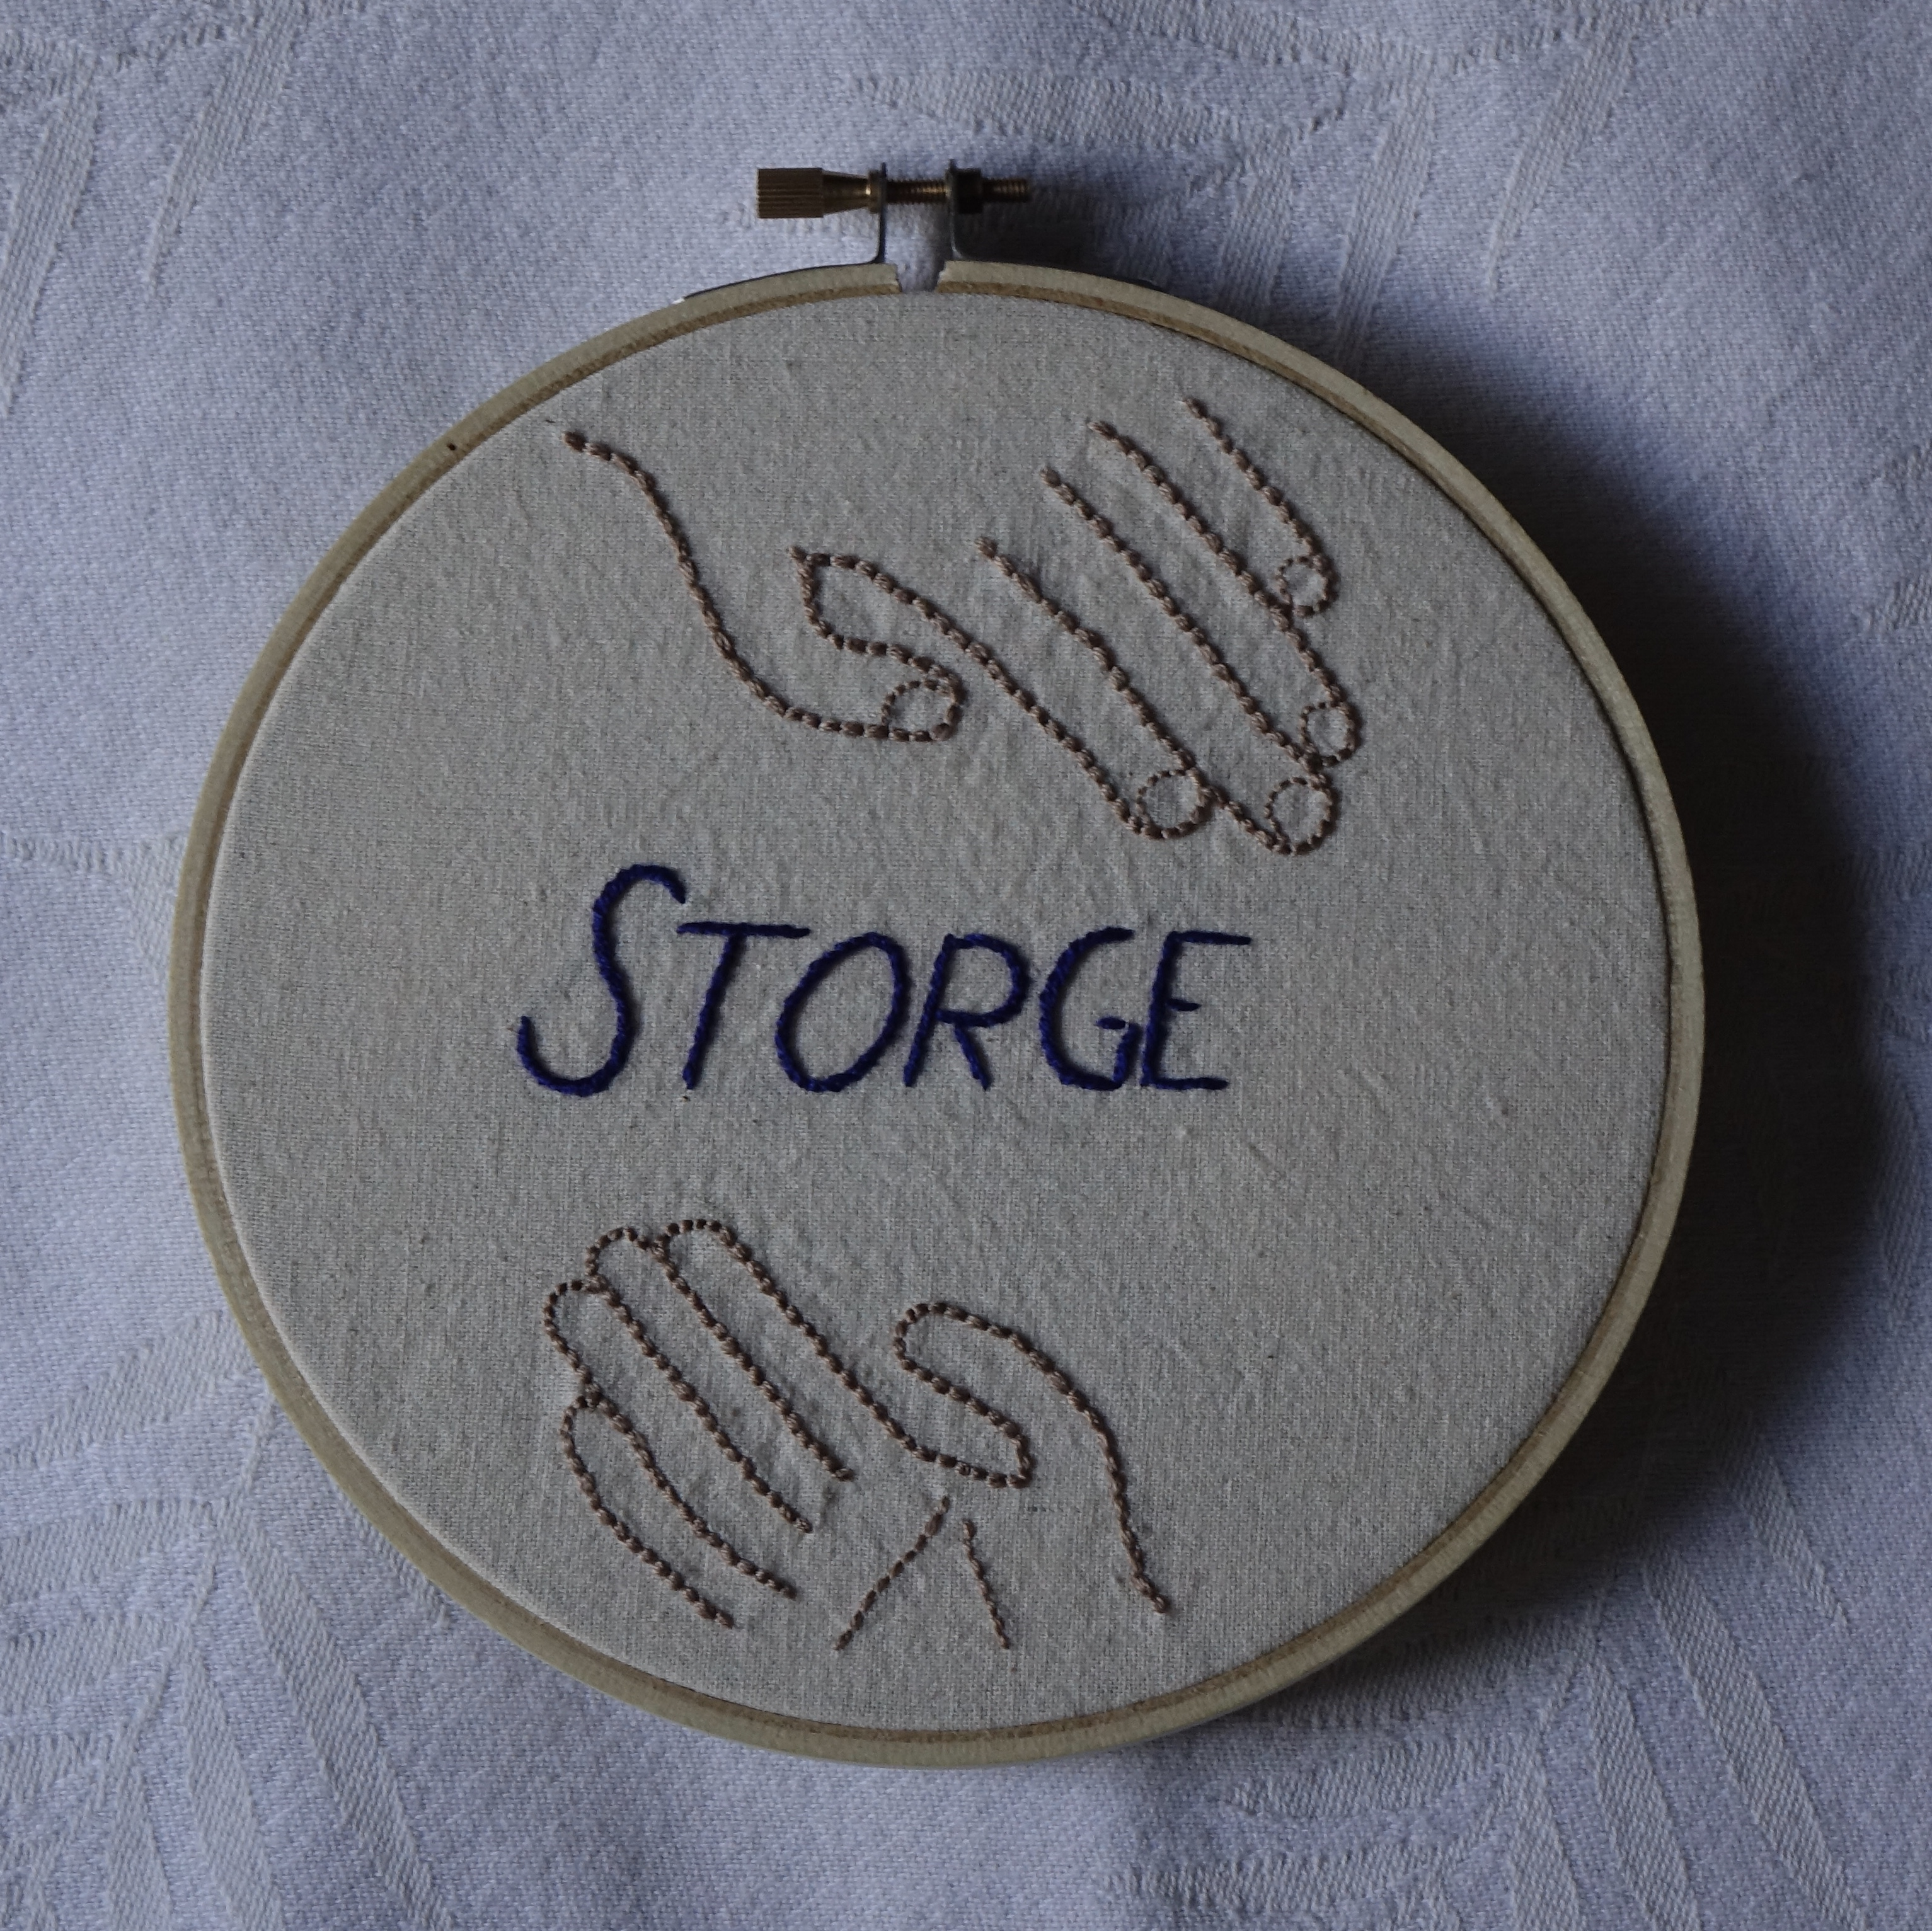 """""""STORGE"""" embroidered in dark blue italics, with two hands."""